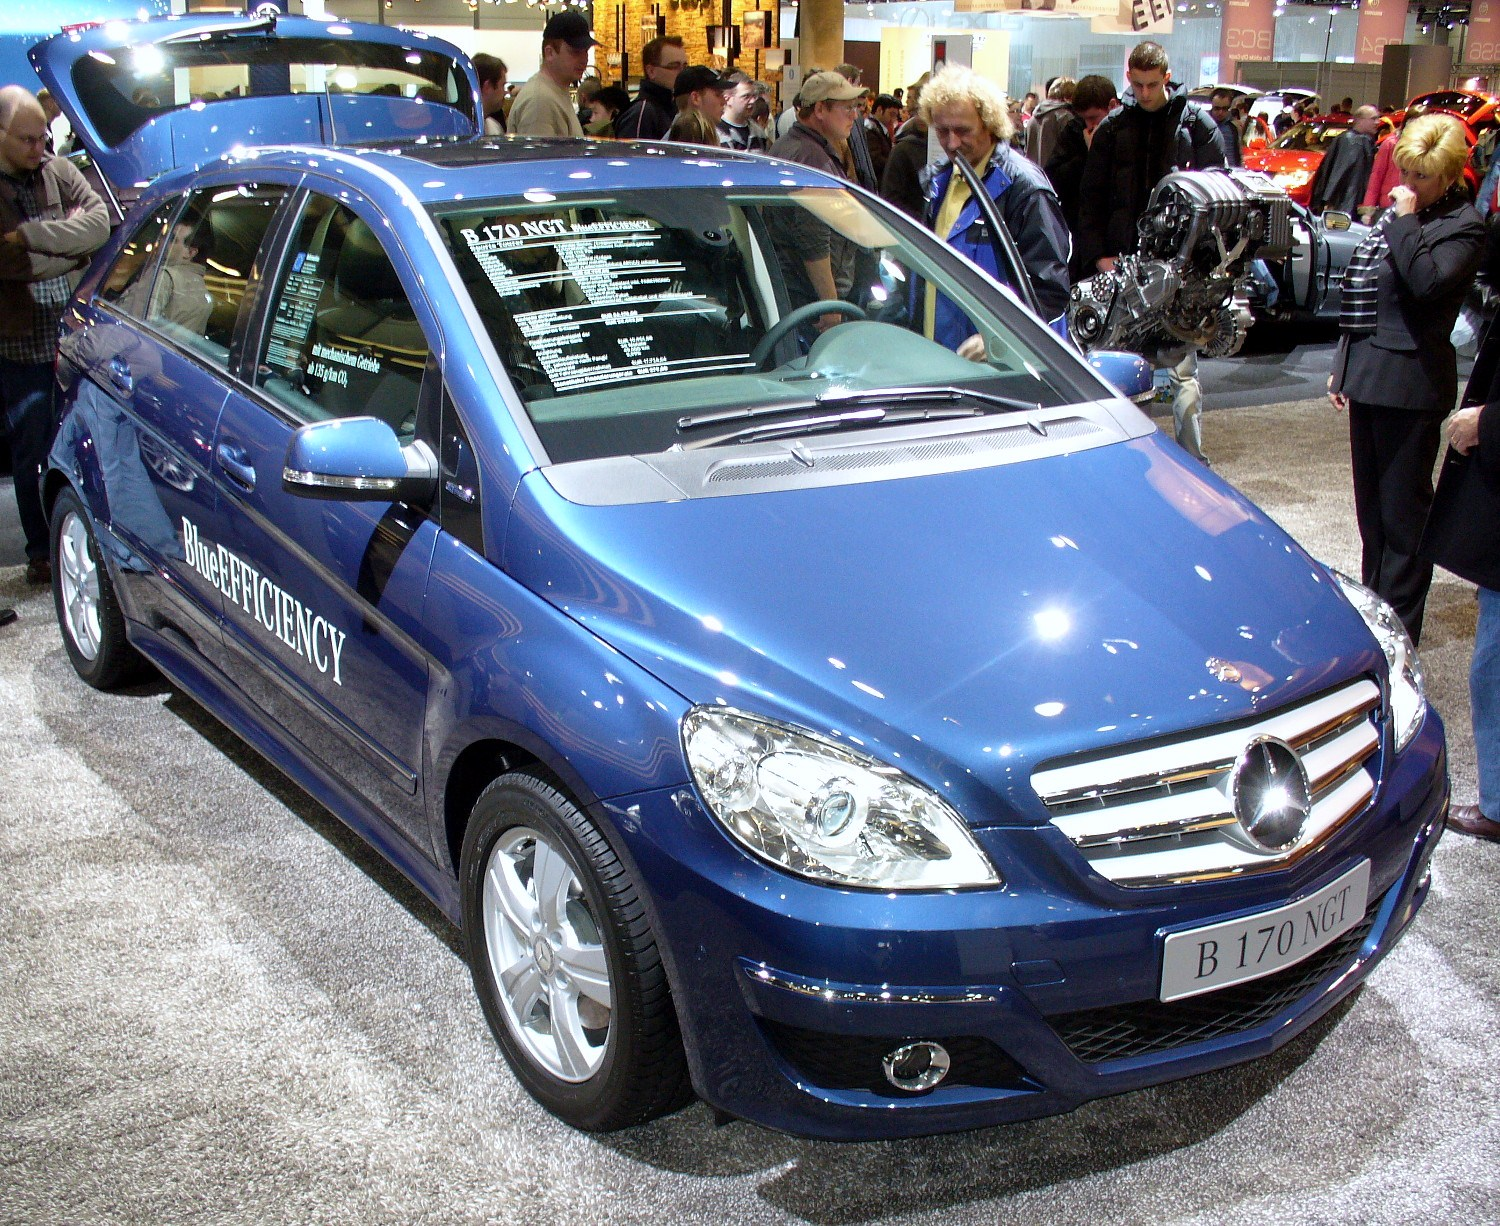 File:Mercedes-Benz W245 B170 NGT BlueEfficiency Facelift ...